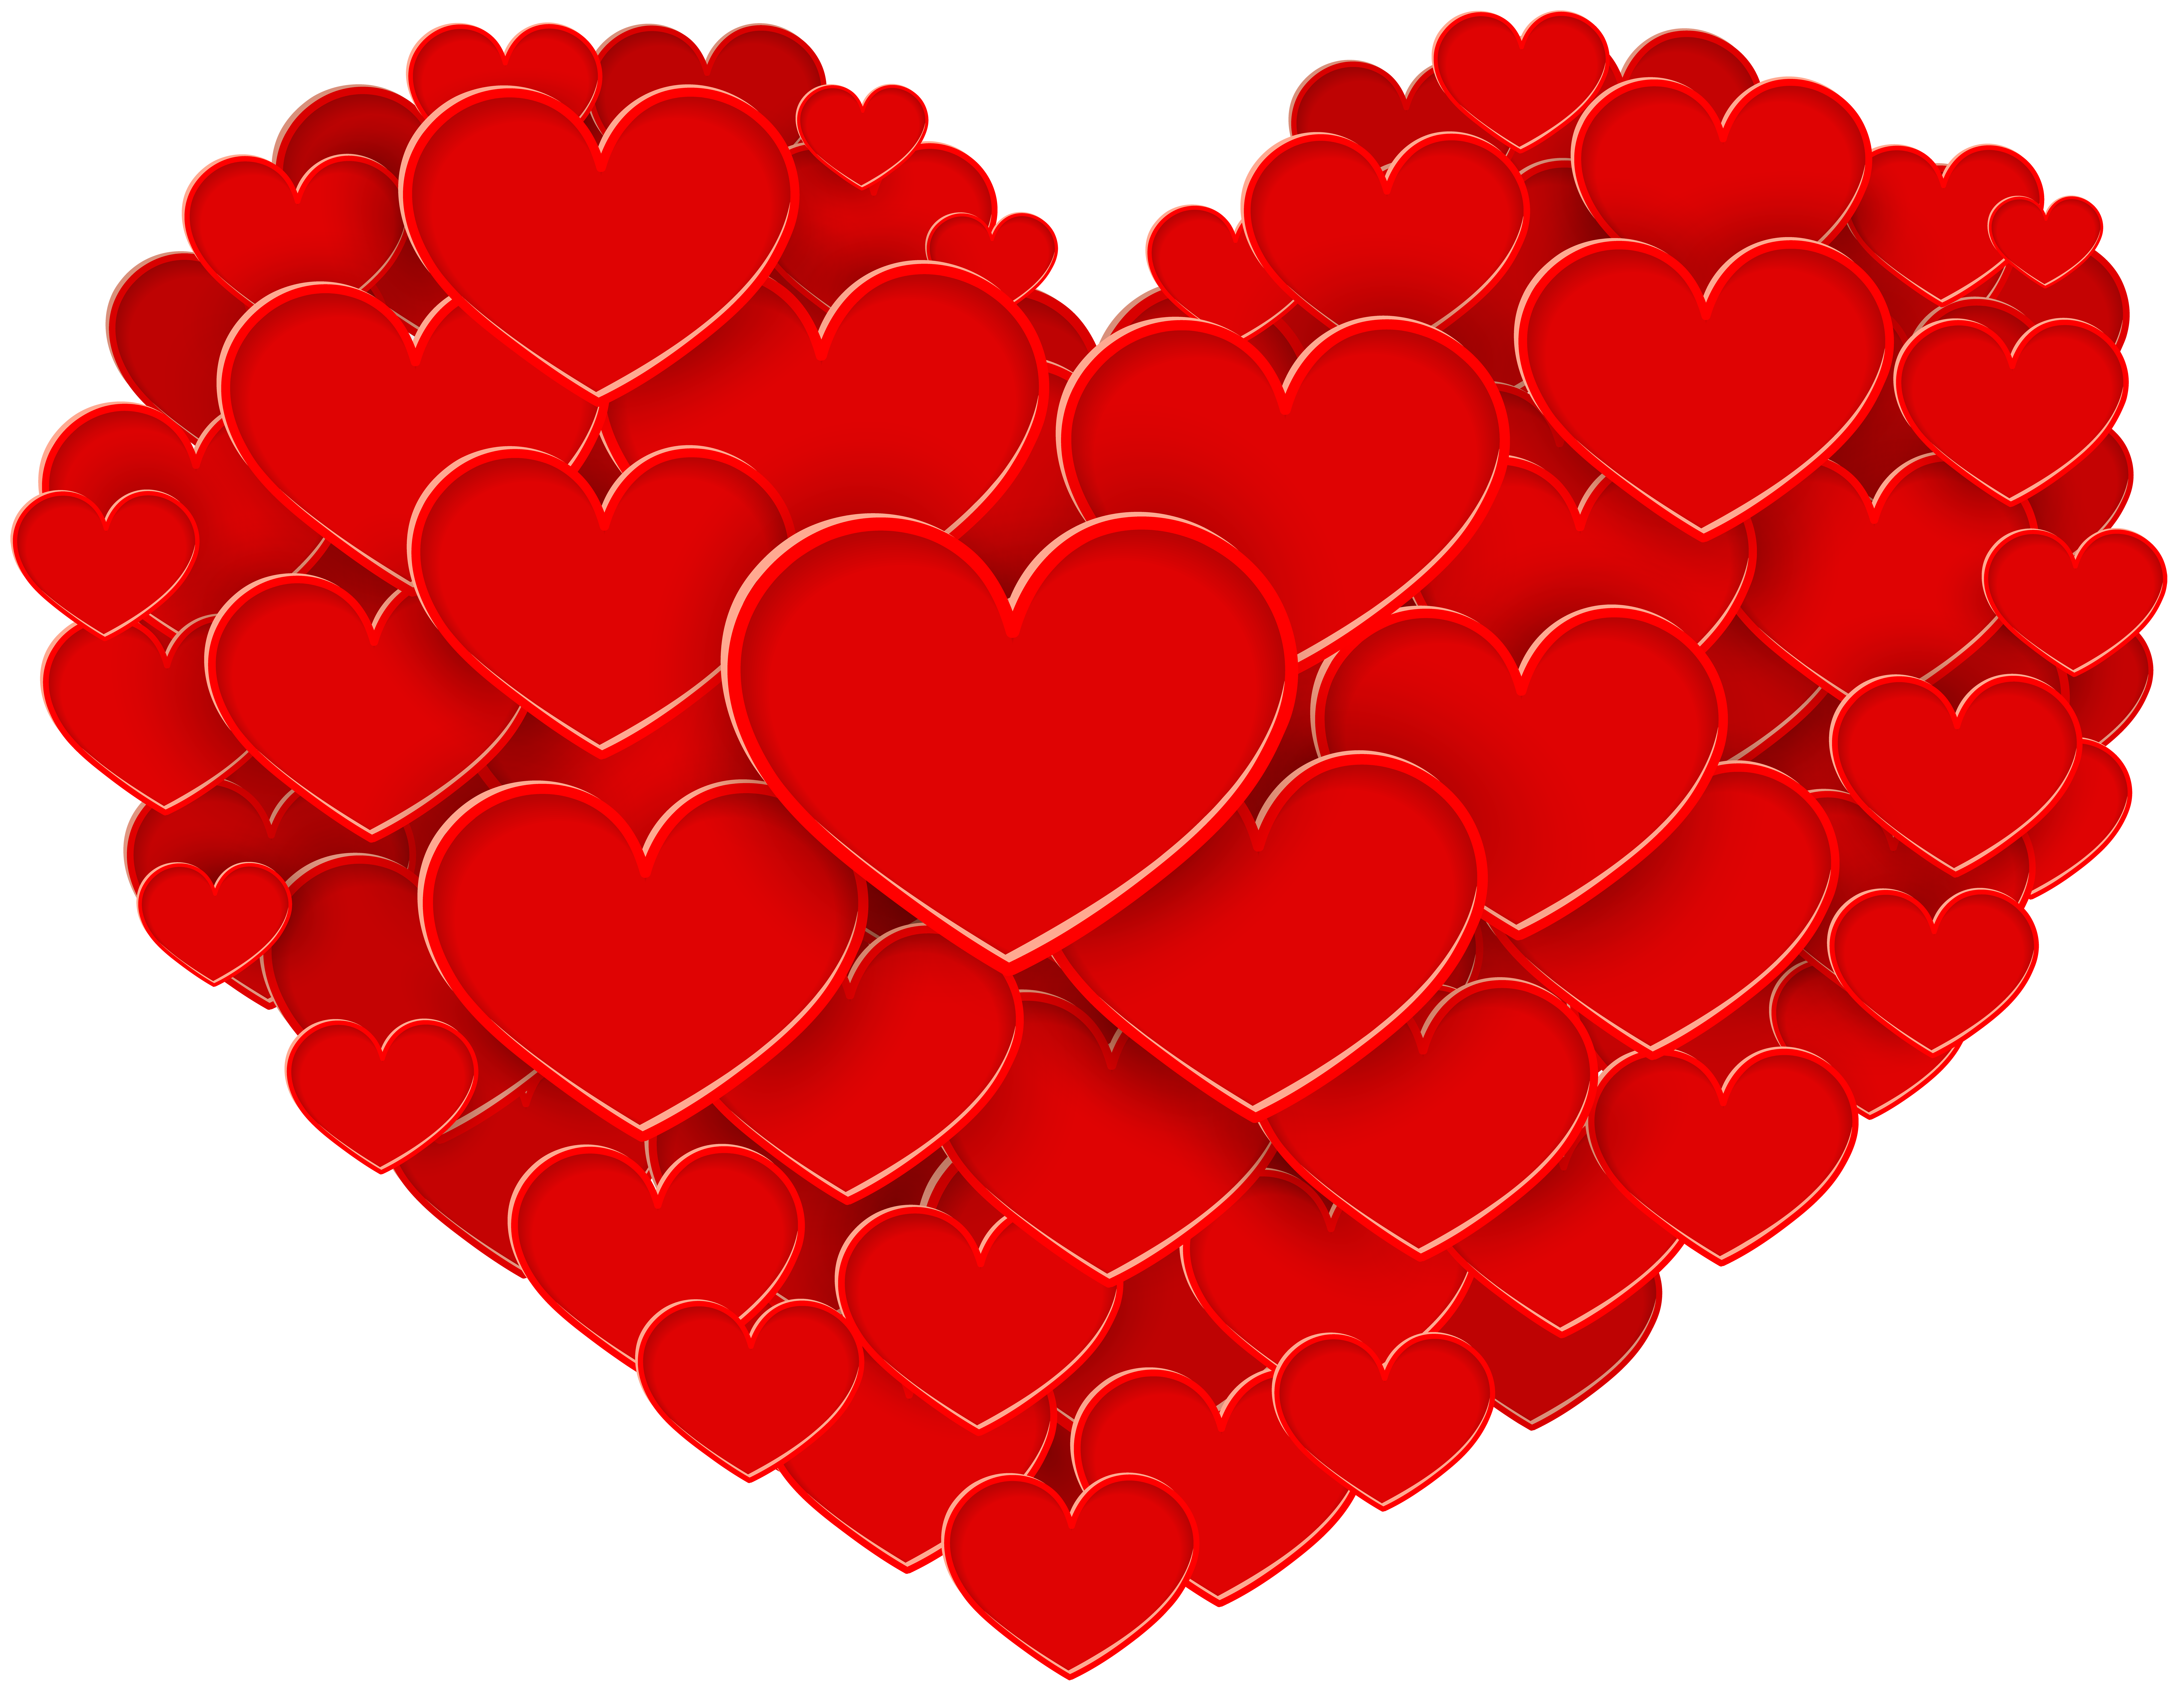 Red heart clipart high resolution png black and white download Red Heart PNG Clip Art | Gallery Yopriceville - High-Quality Images ... png black and white download